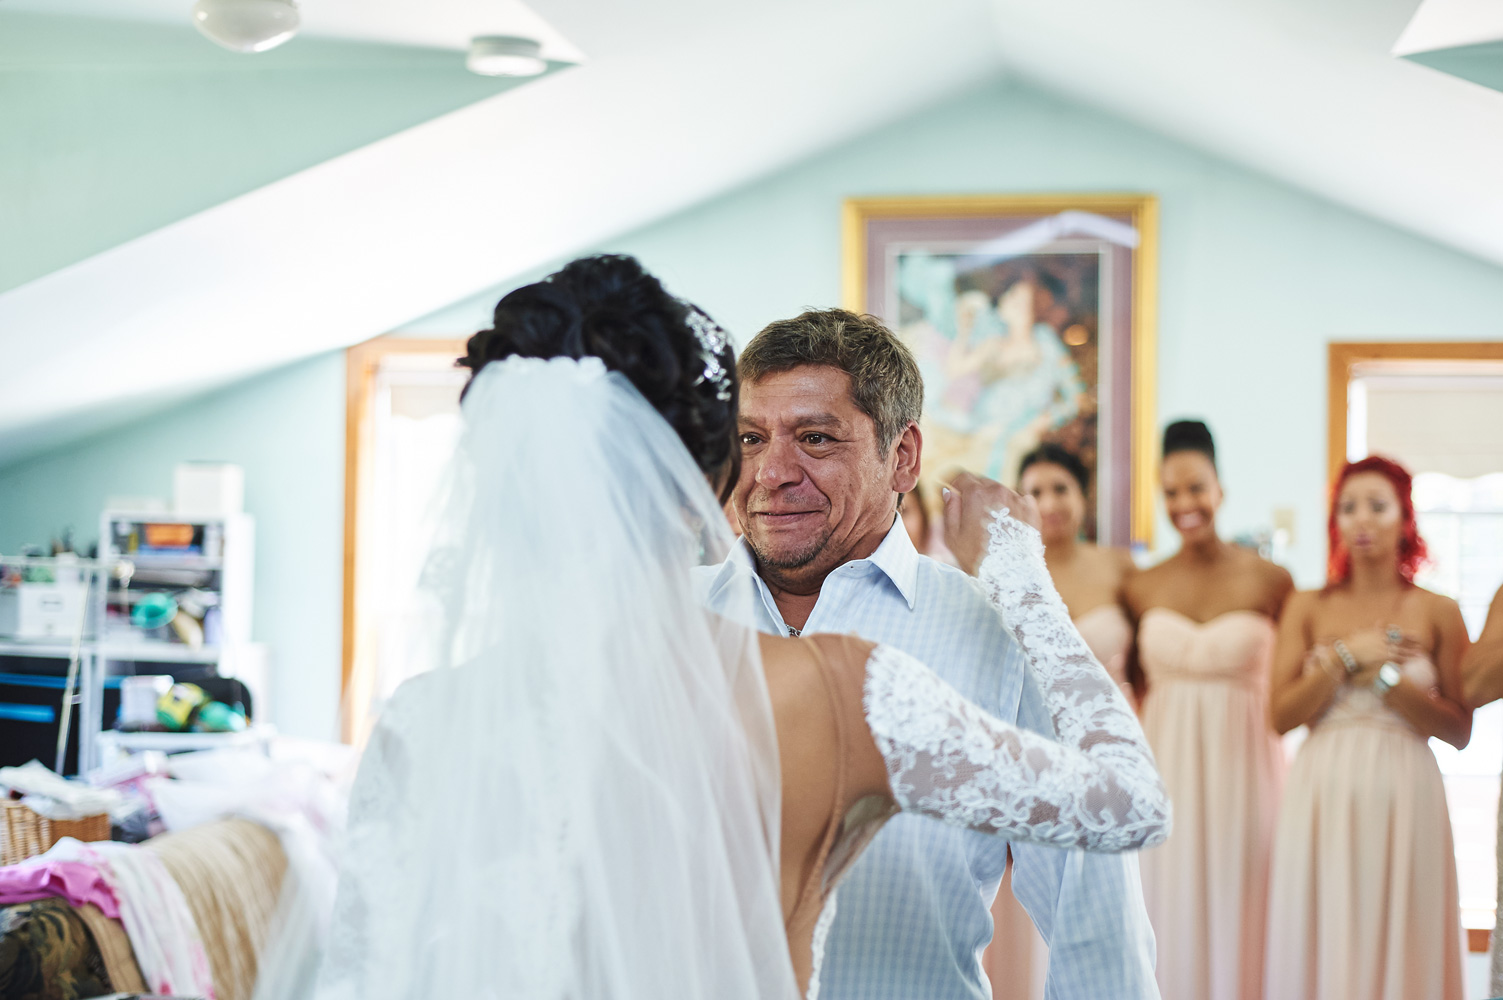 father-of-the-bride-crying-over-seeing-his-daughter-in-her-wedding-dress.jpg